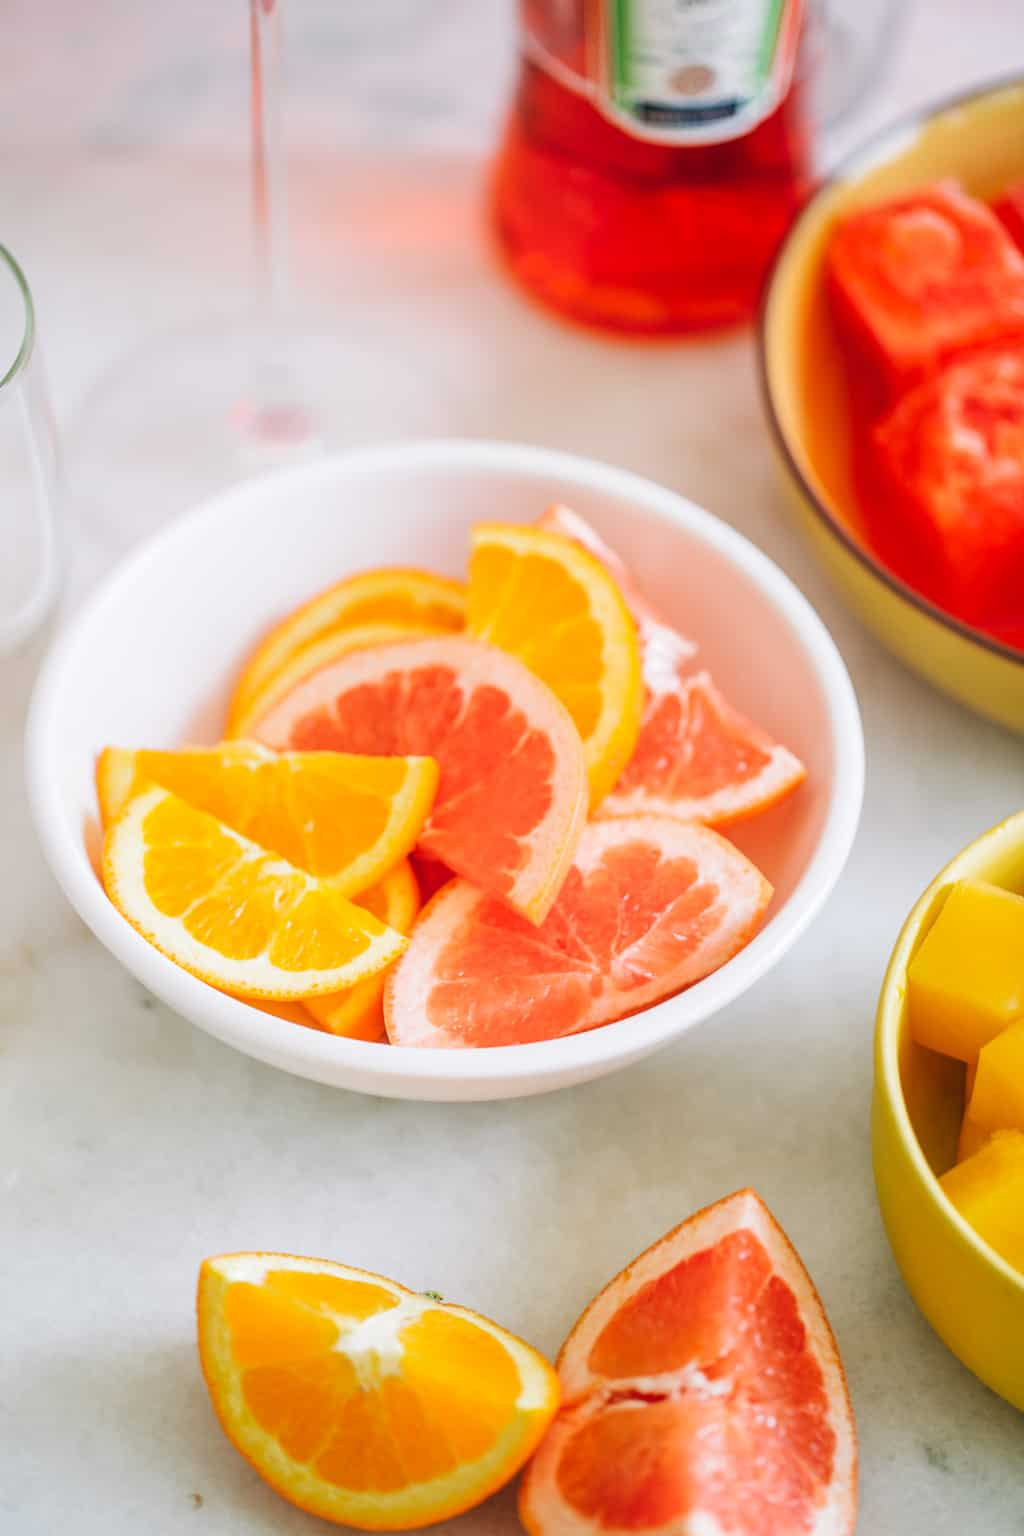 A bowl or orange and grapefruit citrus wedges.